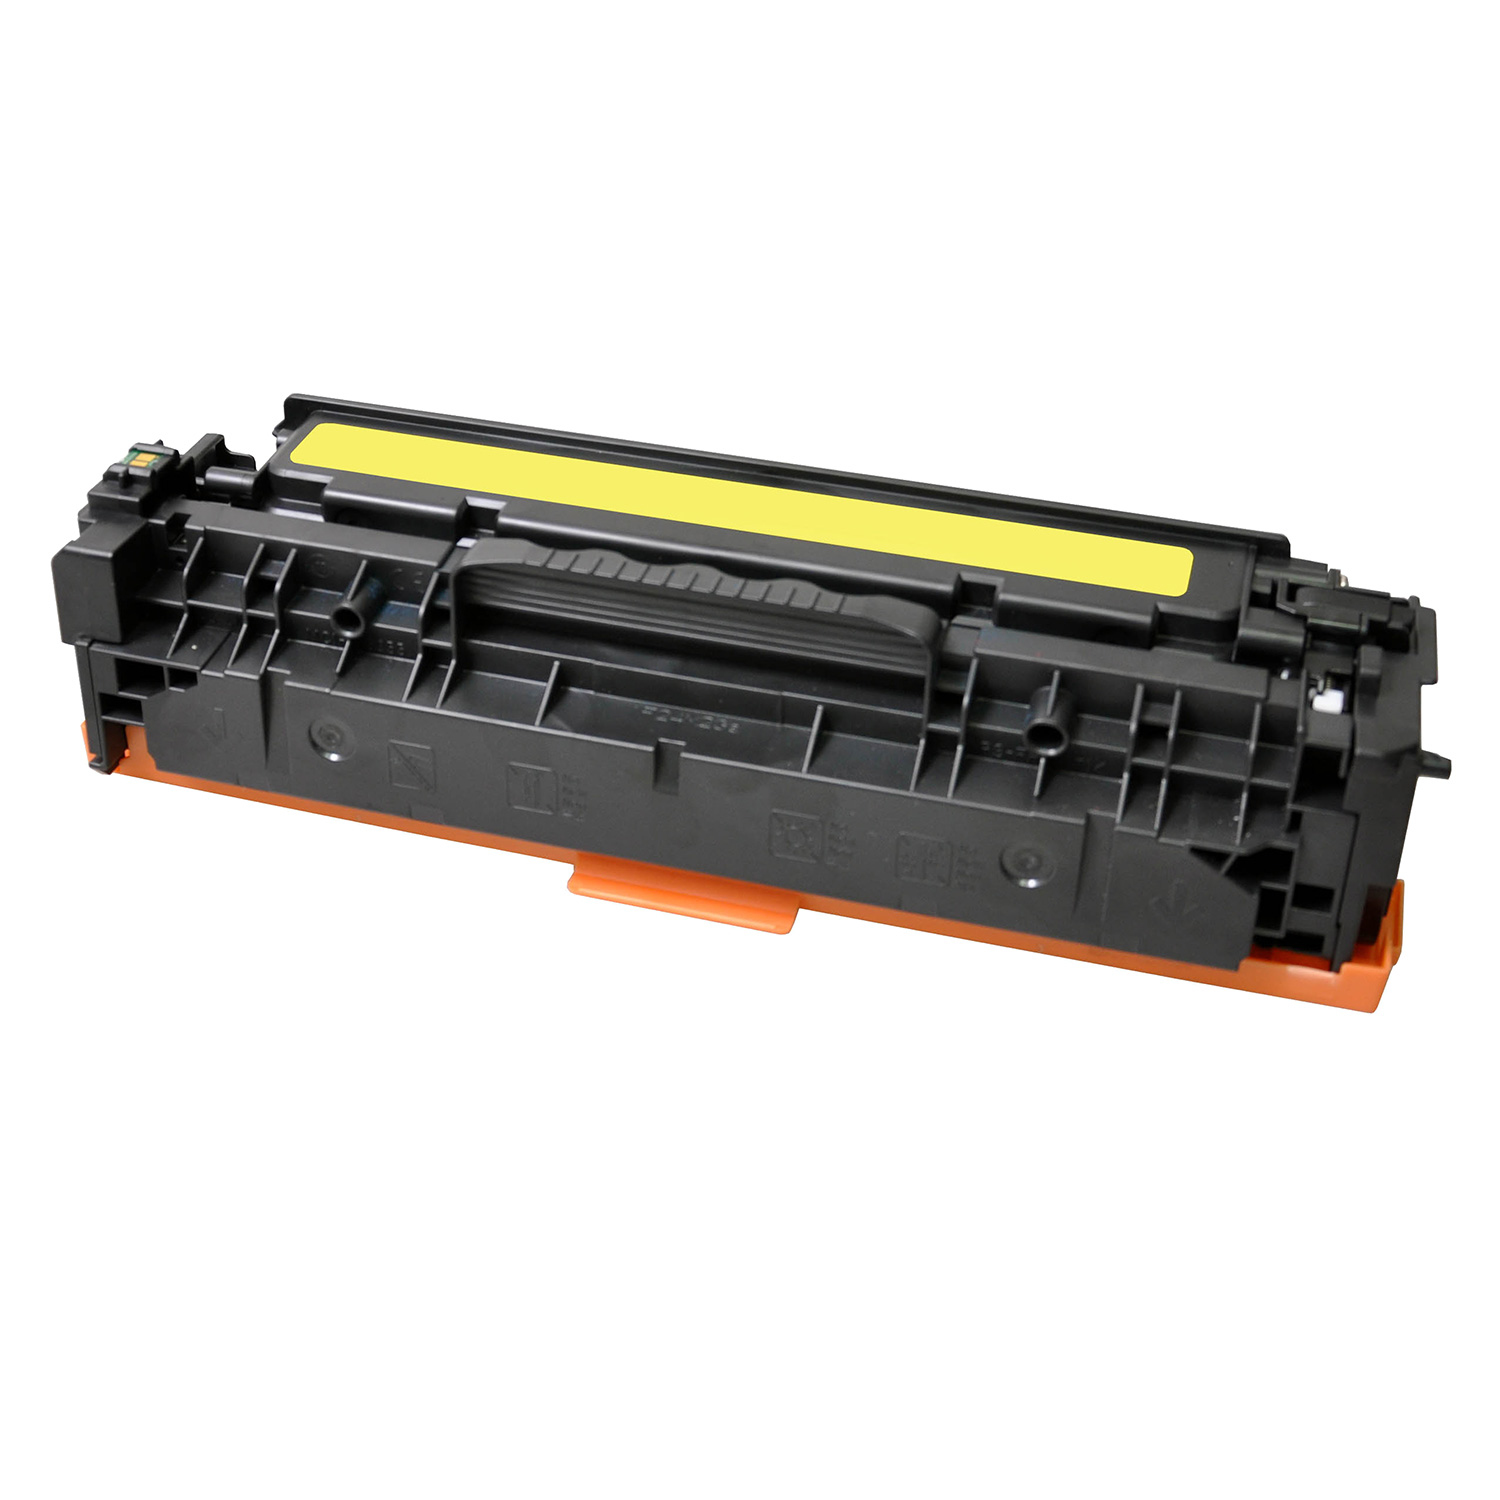 Tonner For Printer V7 Laser Toner For Select Hp And Canon Printer Replaces